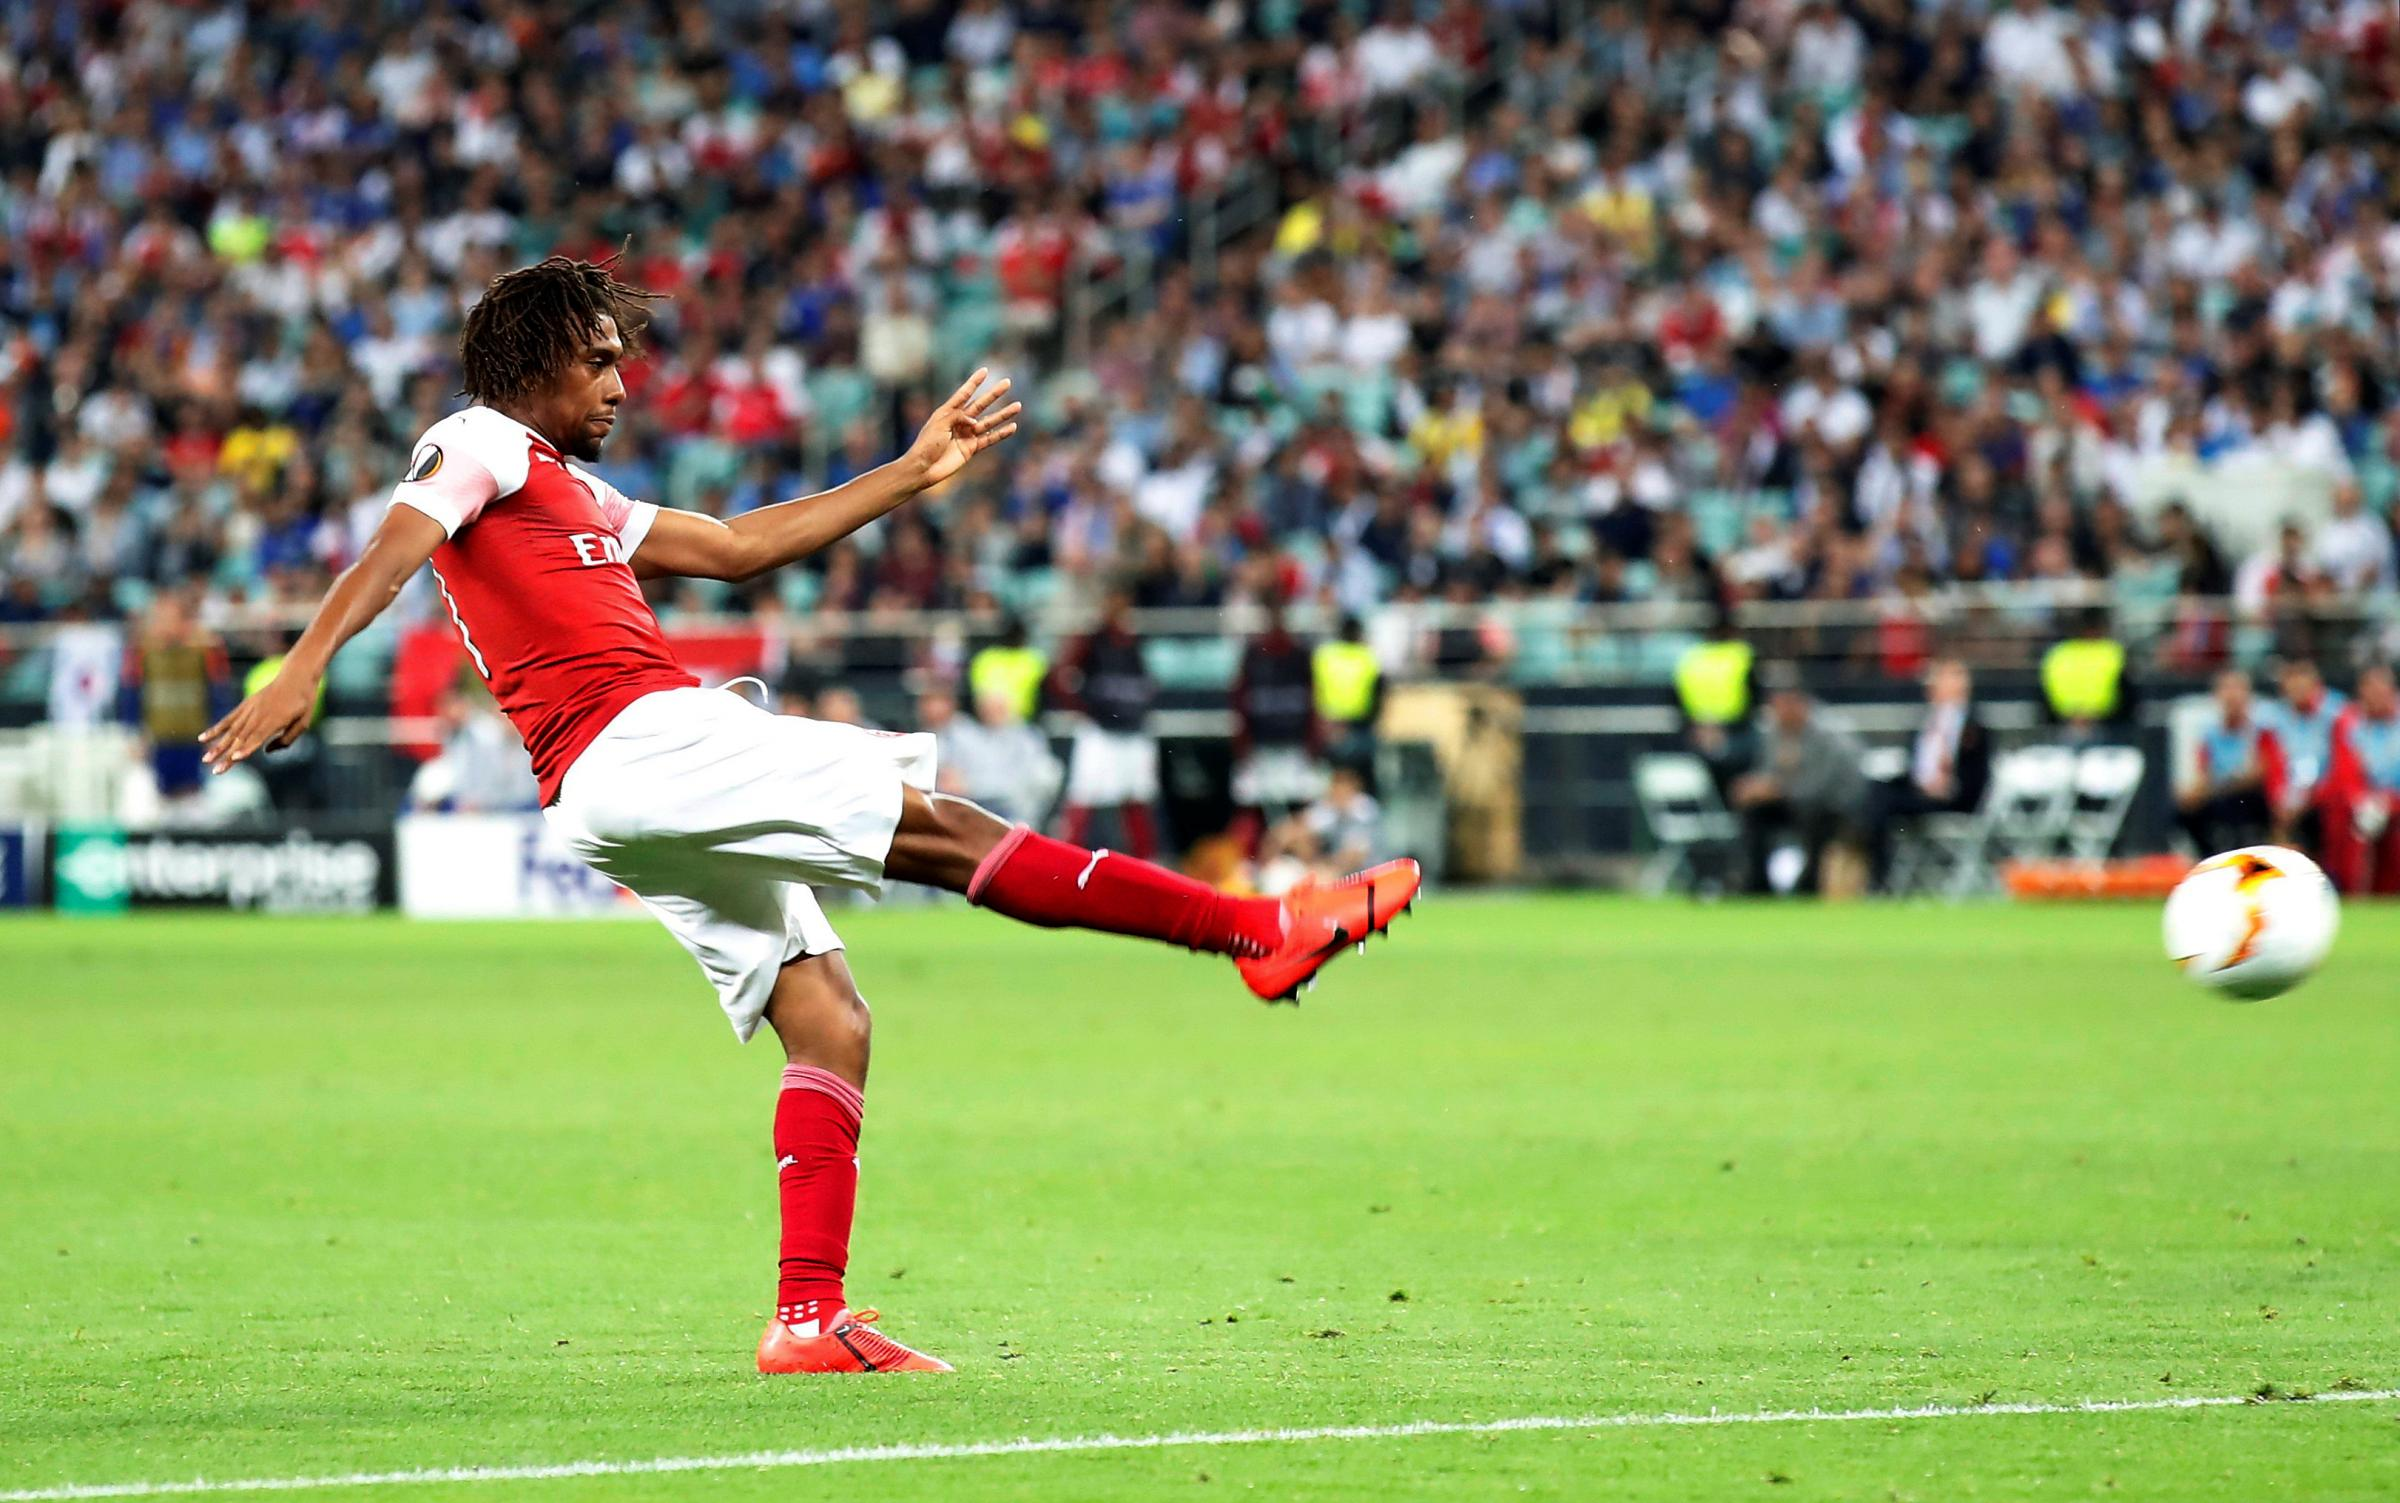 Everton vs Watford: Marco Silva to decide if Alex Iwobi included in squad